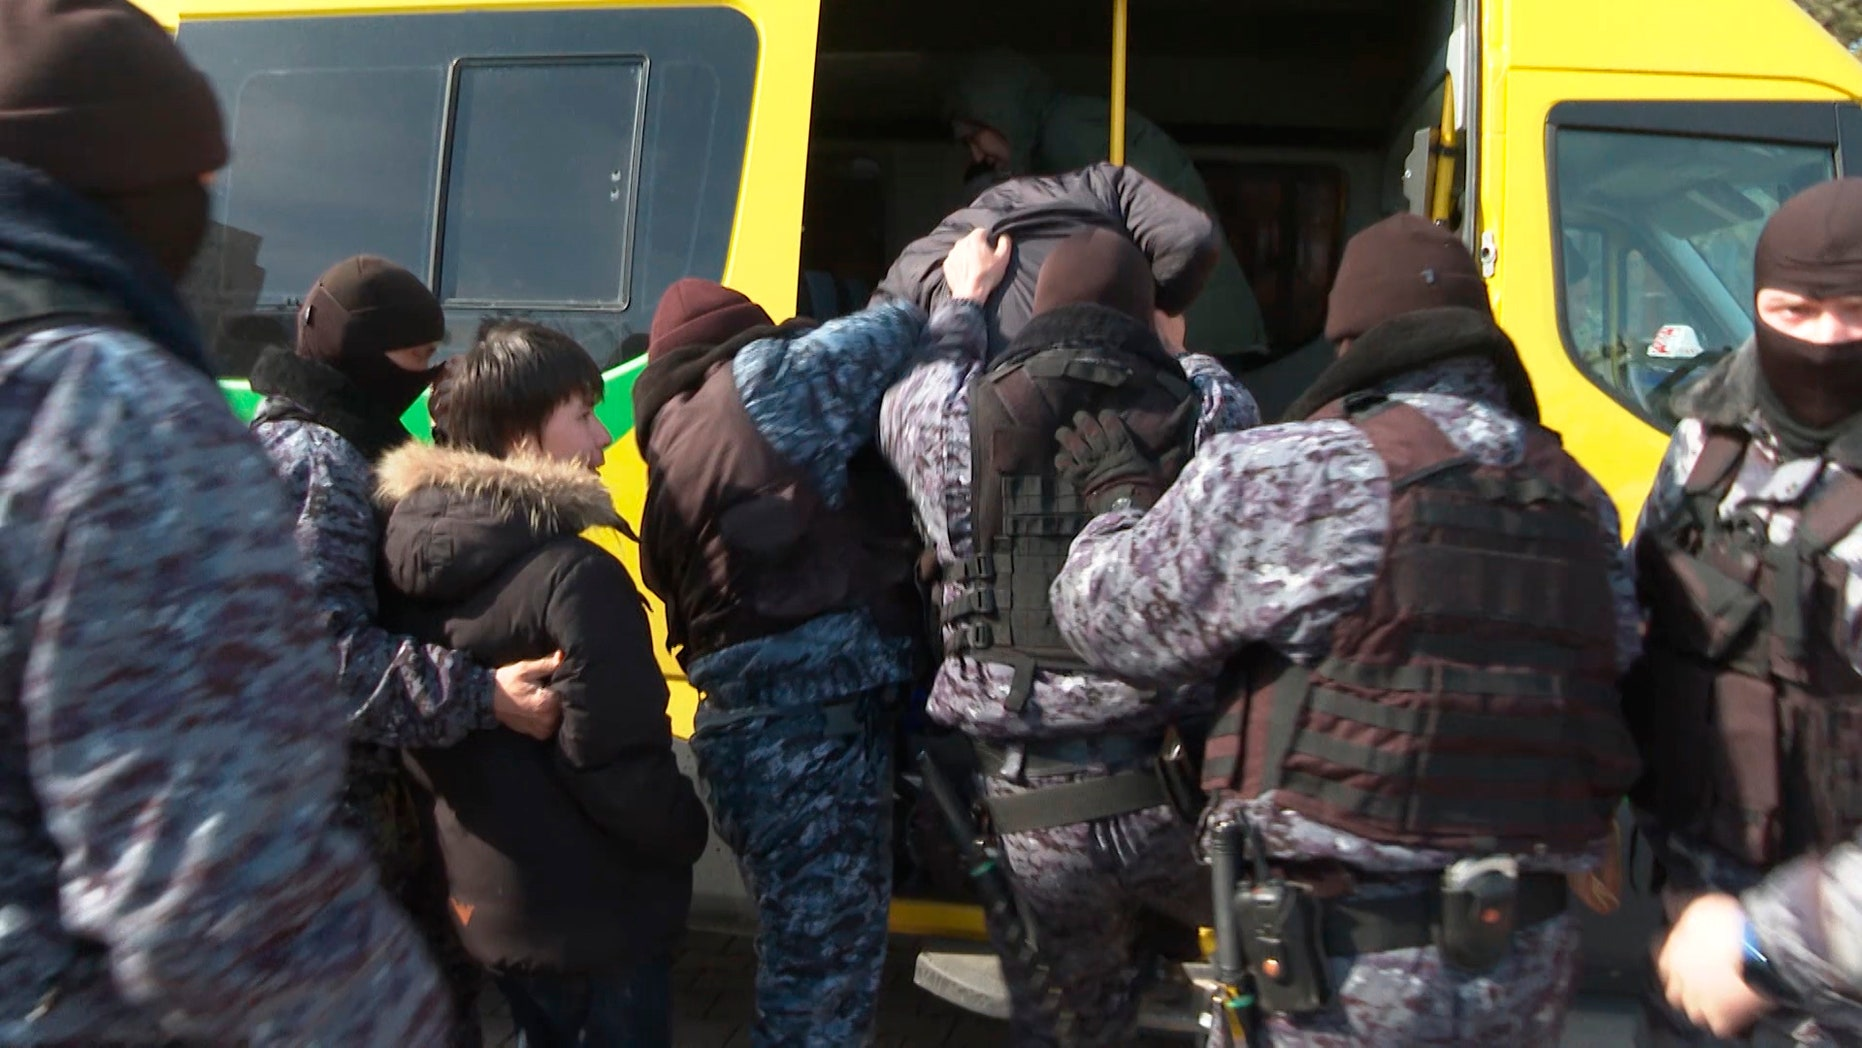 In this video grab from Radio Free Europe/Radio Liberty stream video, taken on Thursday, March 21, 2019, police officers detain a small group of people who were protesting against the renaming of the capital city, in central Astana, Kazakhstan.  Kazakhstan has renamed its capital city Astana, now calling it Nursultan, to honour outgoing President Nursultan Nazarbayev, who unexpectedly resigned on Tuesday. (Serhii Nuzhnenko/Radio Free Europe/Radio Liberty via AP)